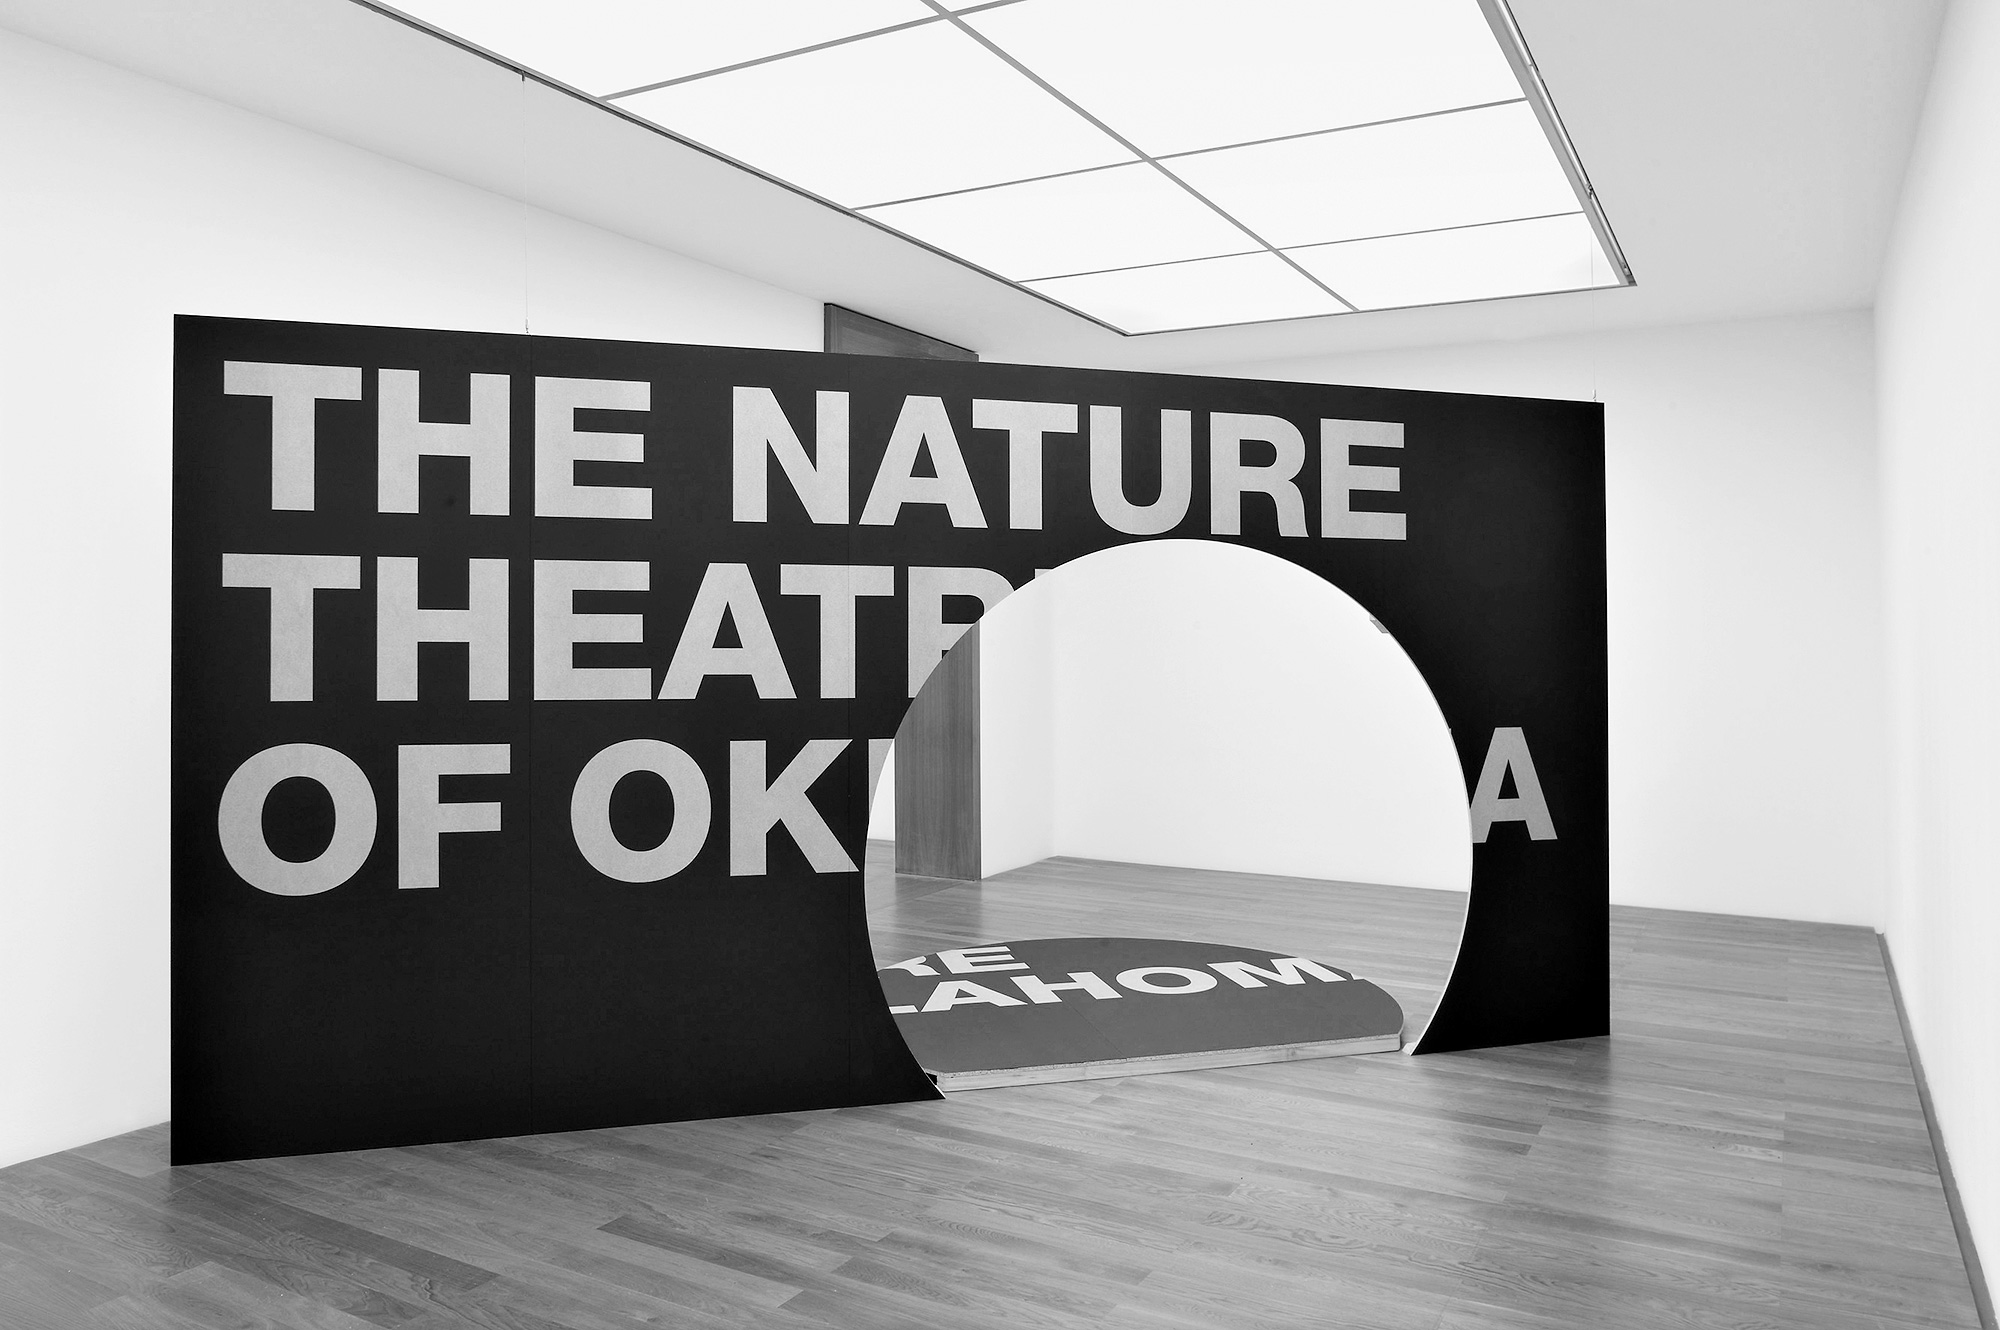 Famed, The Nature Theatre of Oklahoma [Spatial Reconfiguration #10]